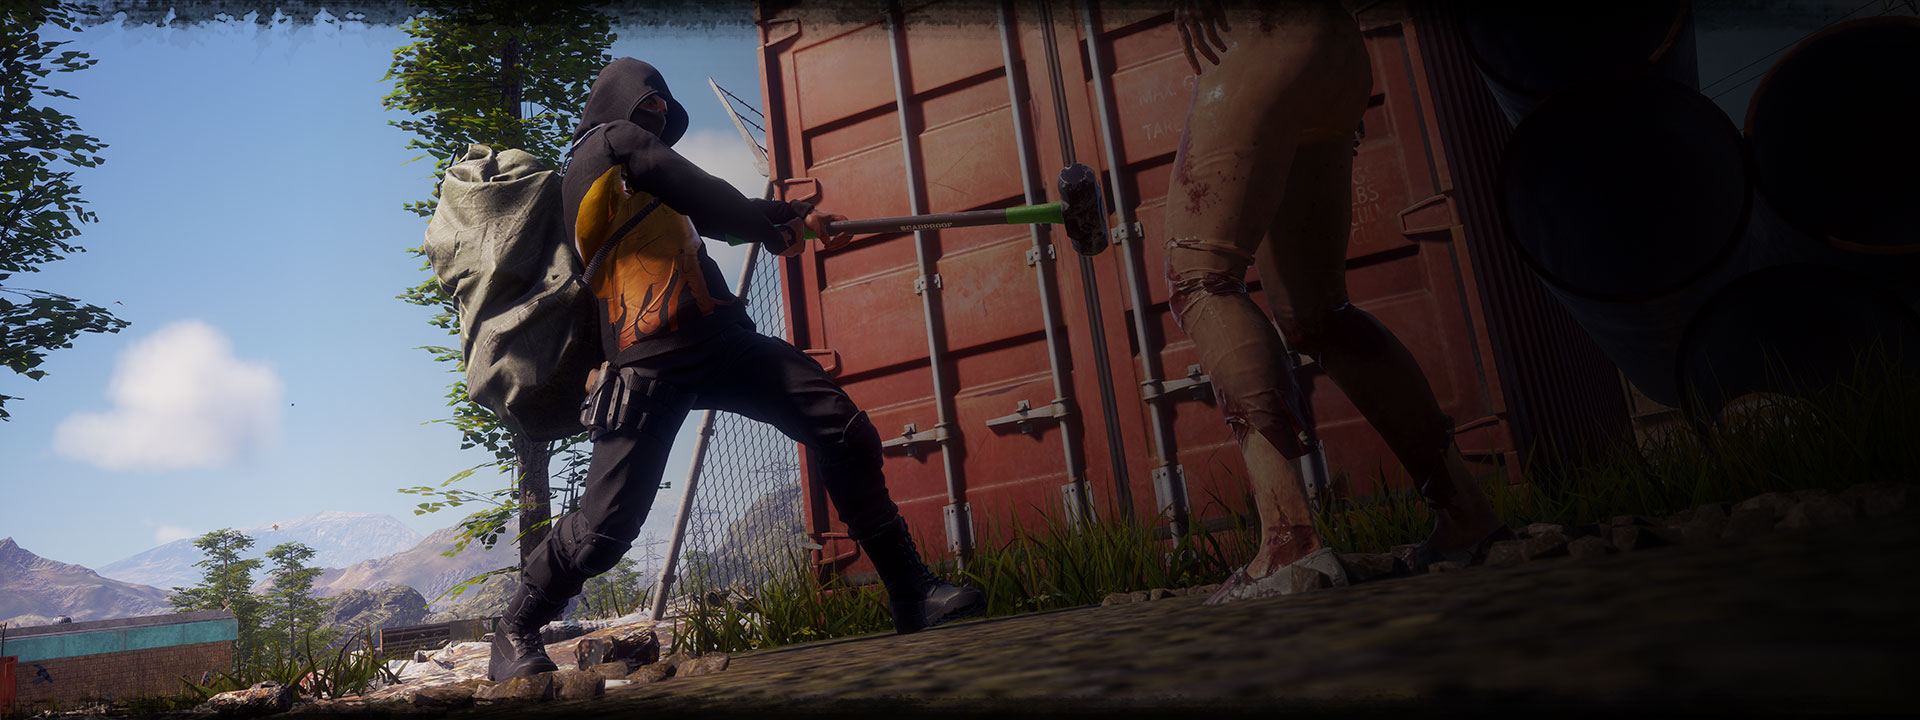 Character from State of Decay 2 swinging a sledgehammer with a zombie in front